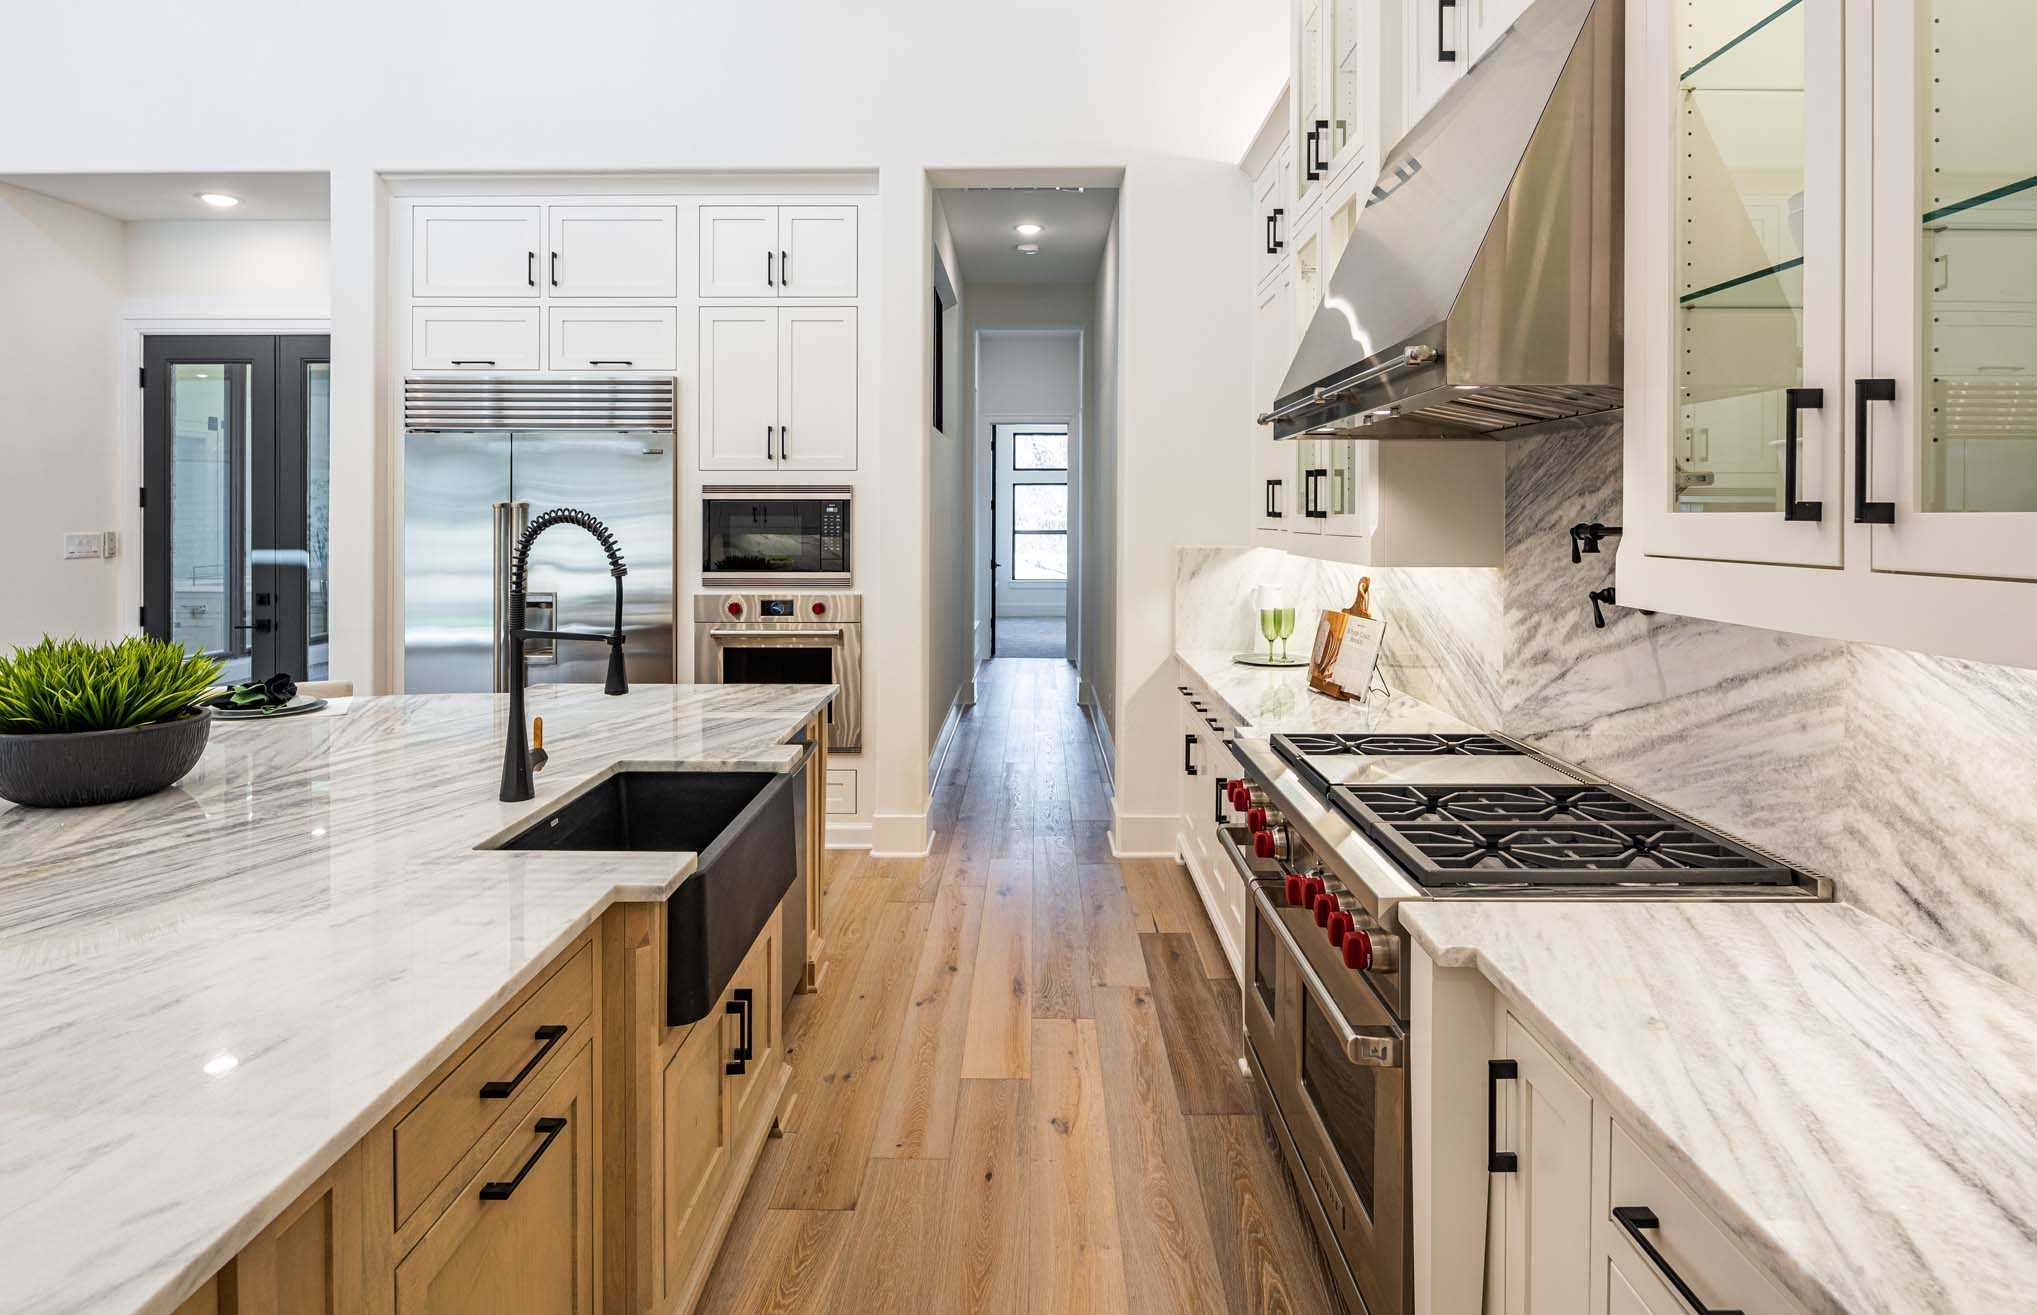 Kitchen featured in the Plan 5200 CUSTOM PLAN By Huntington Homes in Dallas, TX